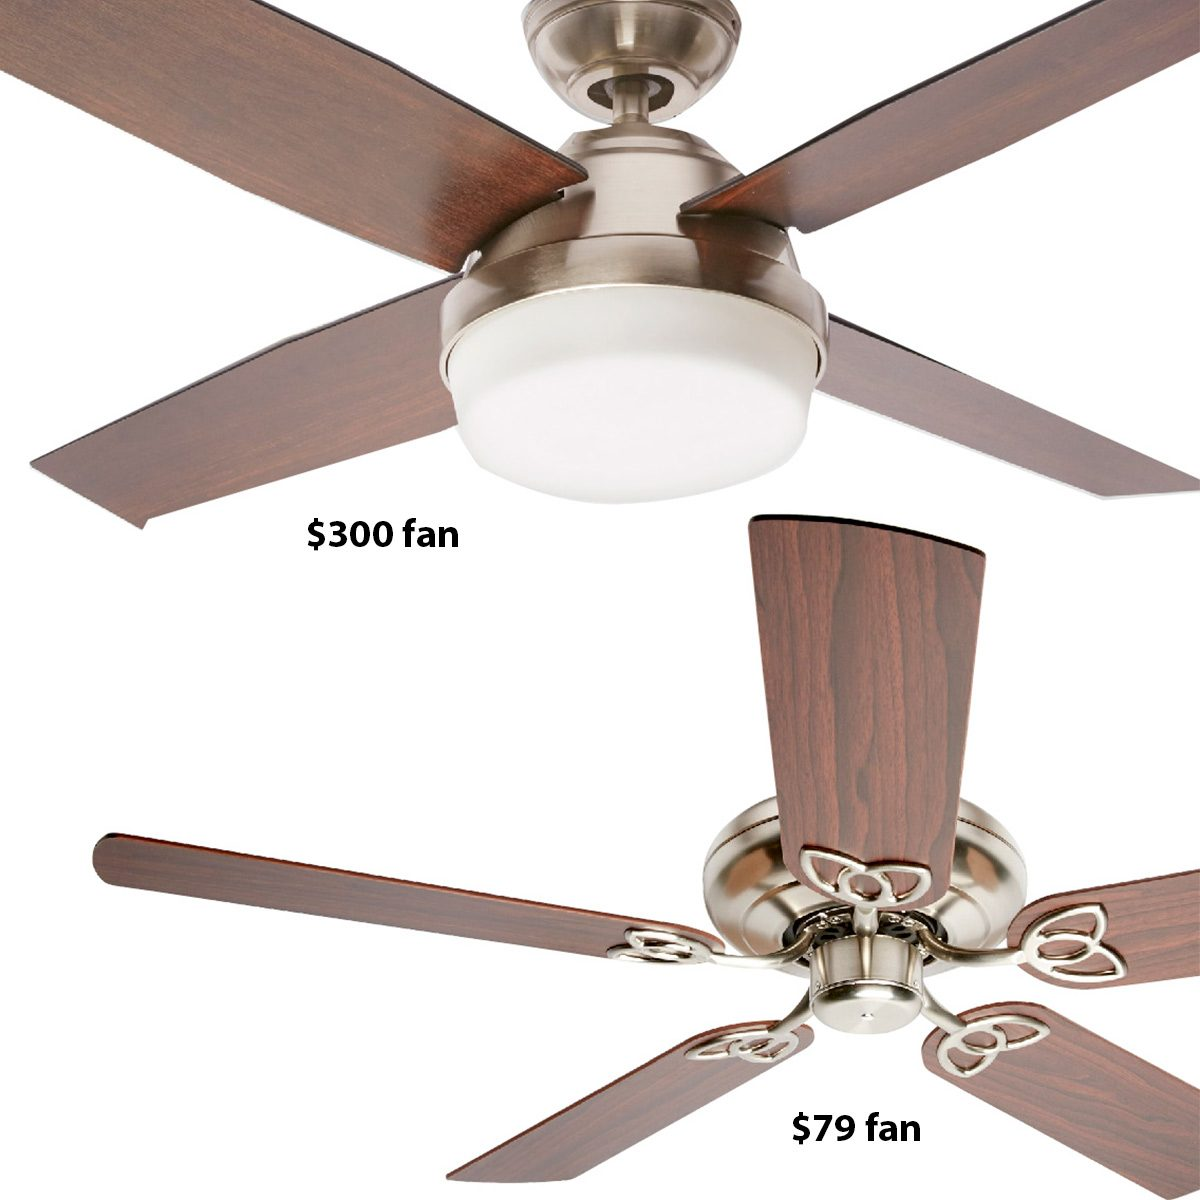 With Ceiling Fans You Get What Pay